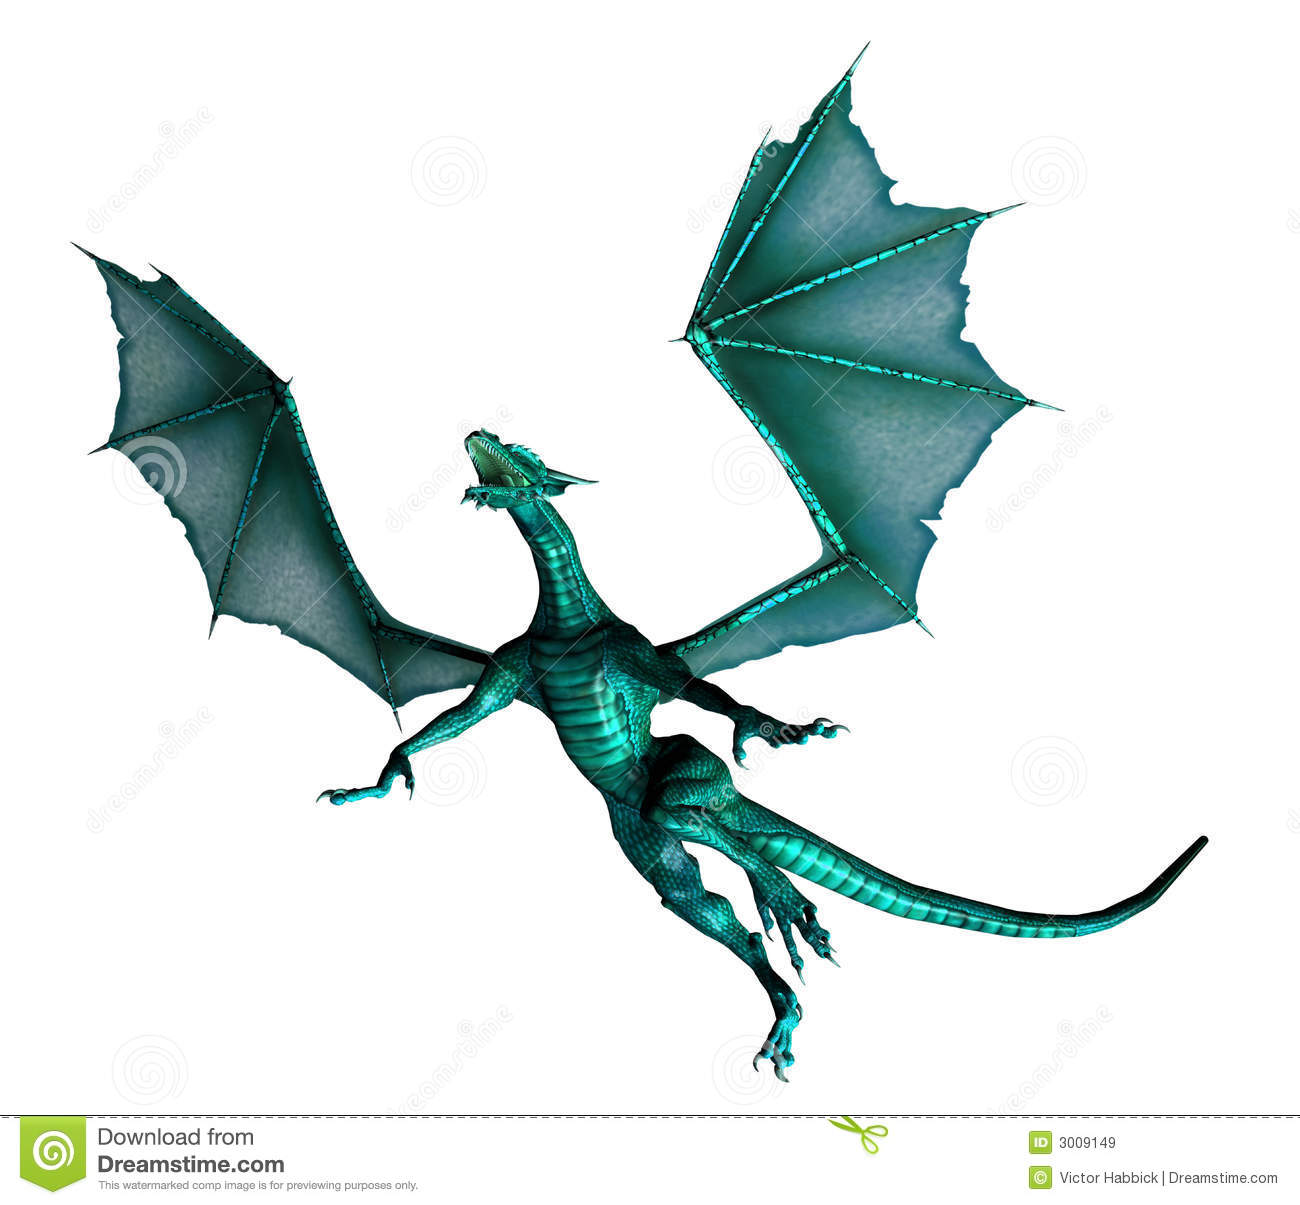 3d illustration of Mythological green dragon in flight isolated on ...